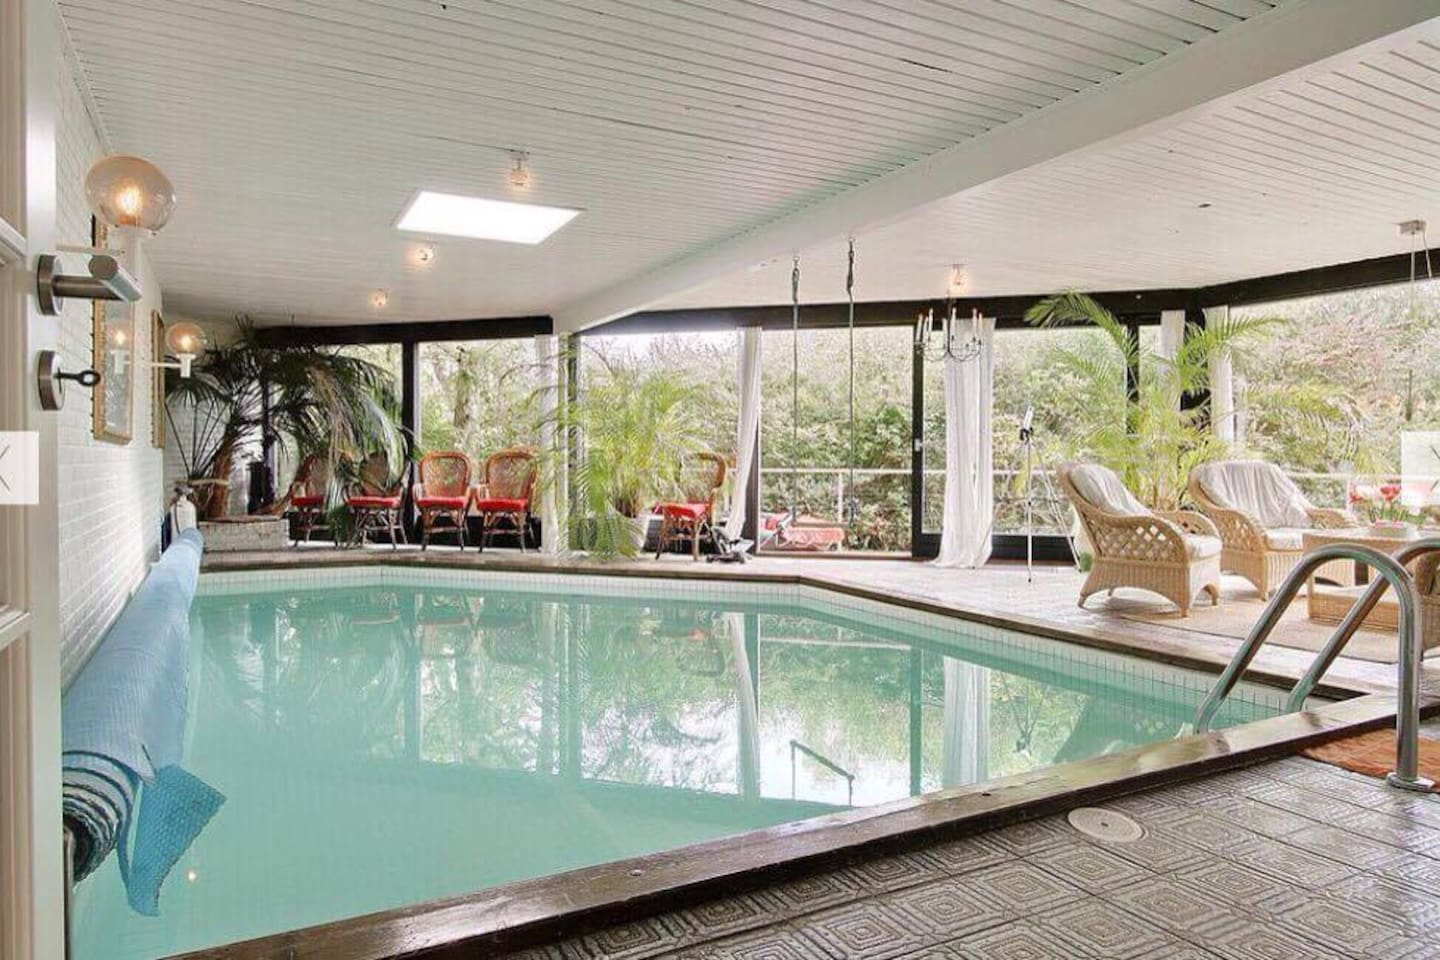 Swimmingpool-room. Tropical climate and with a nice lounge-like table-chair-sofa constellation, if you're having guests